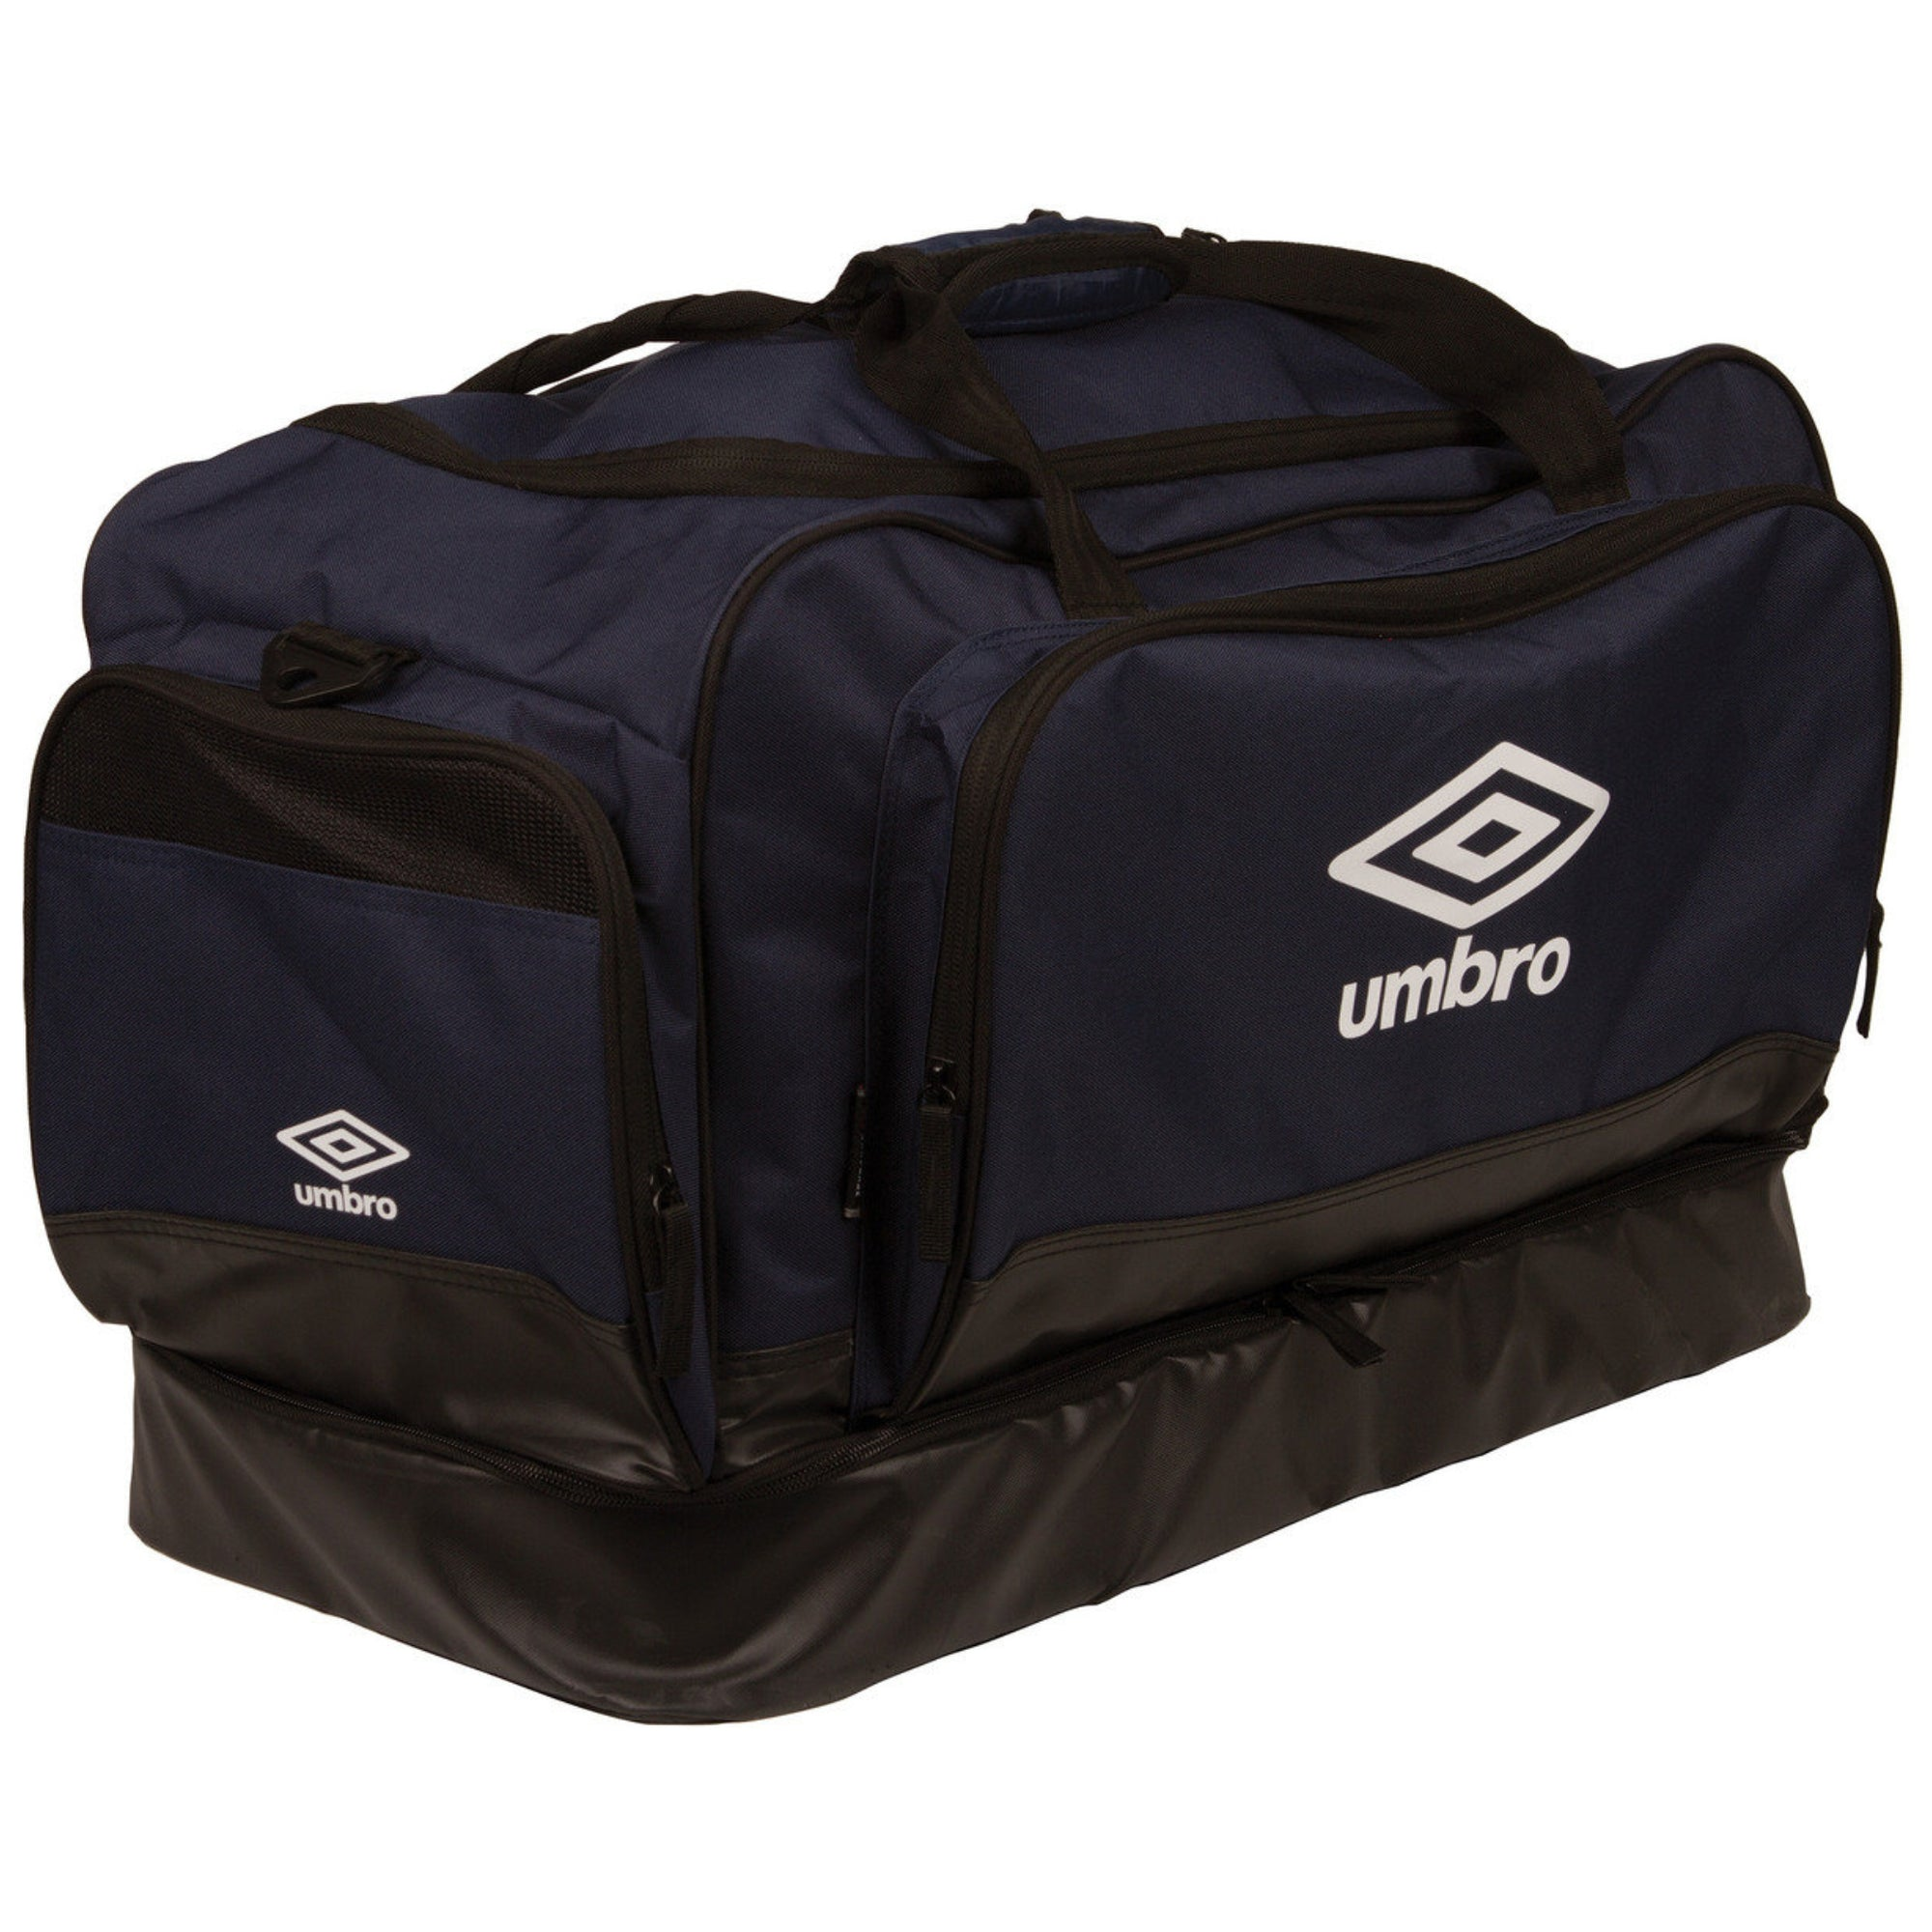 Umbro Medium Hardbase Holdall - Black/White